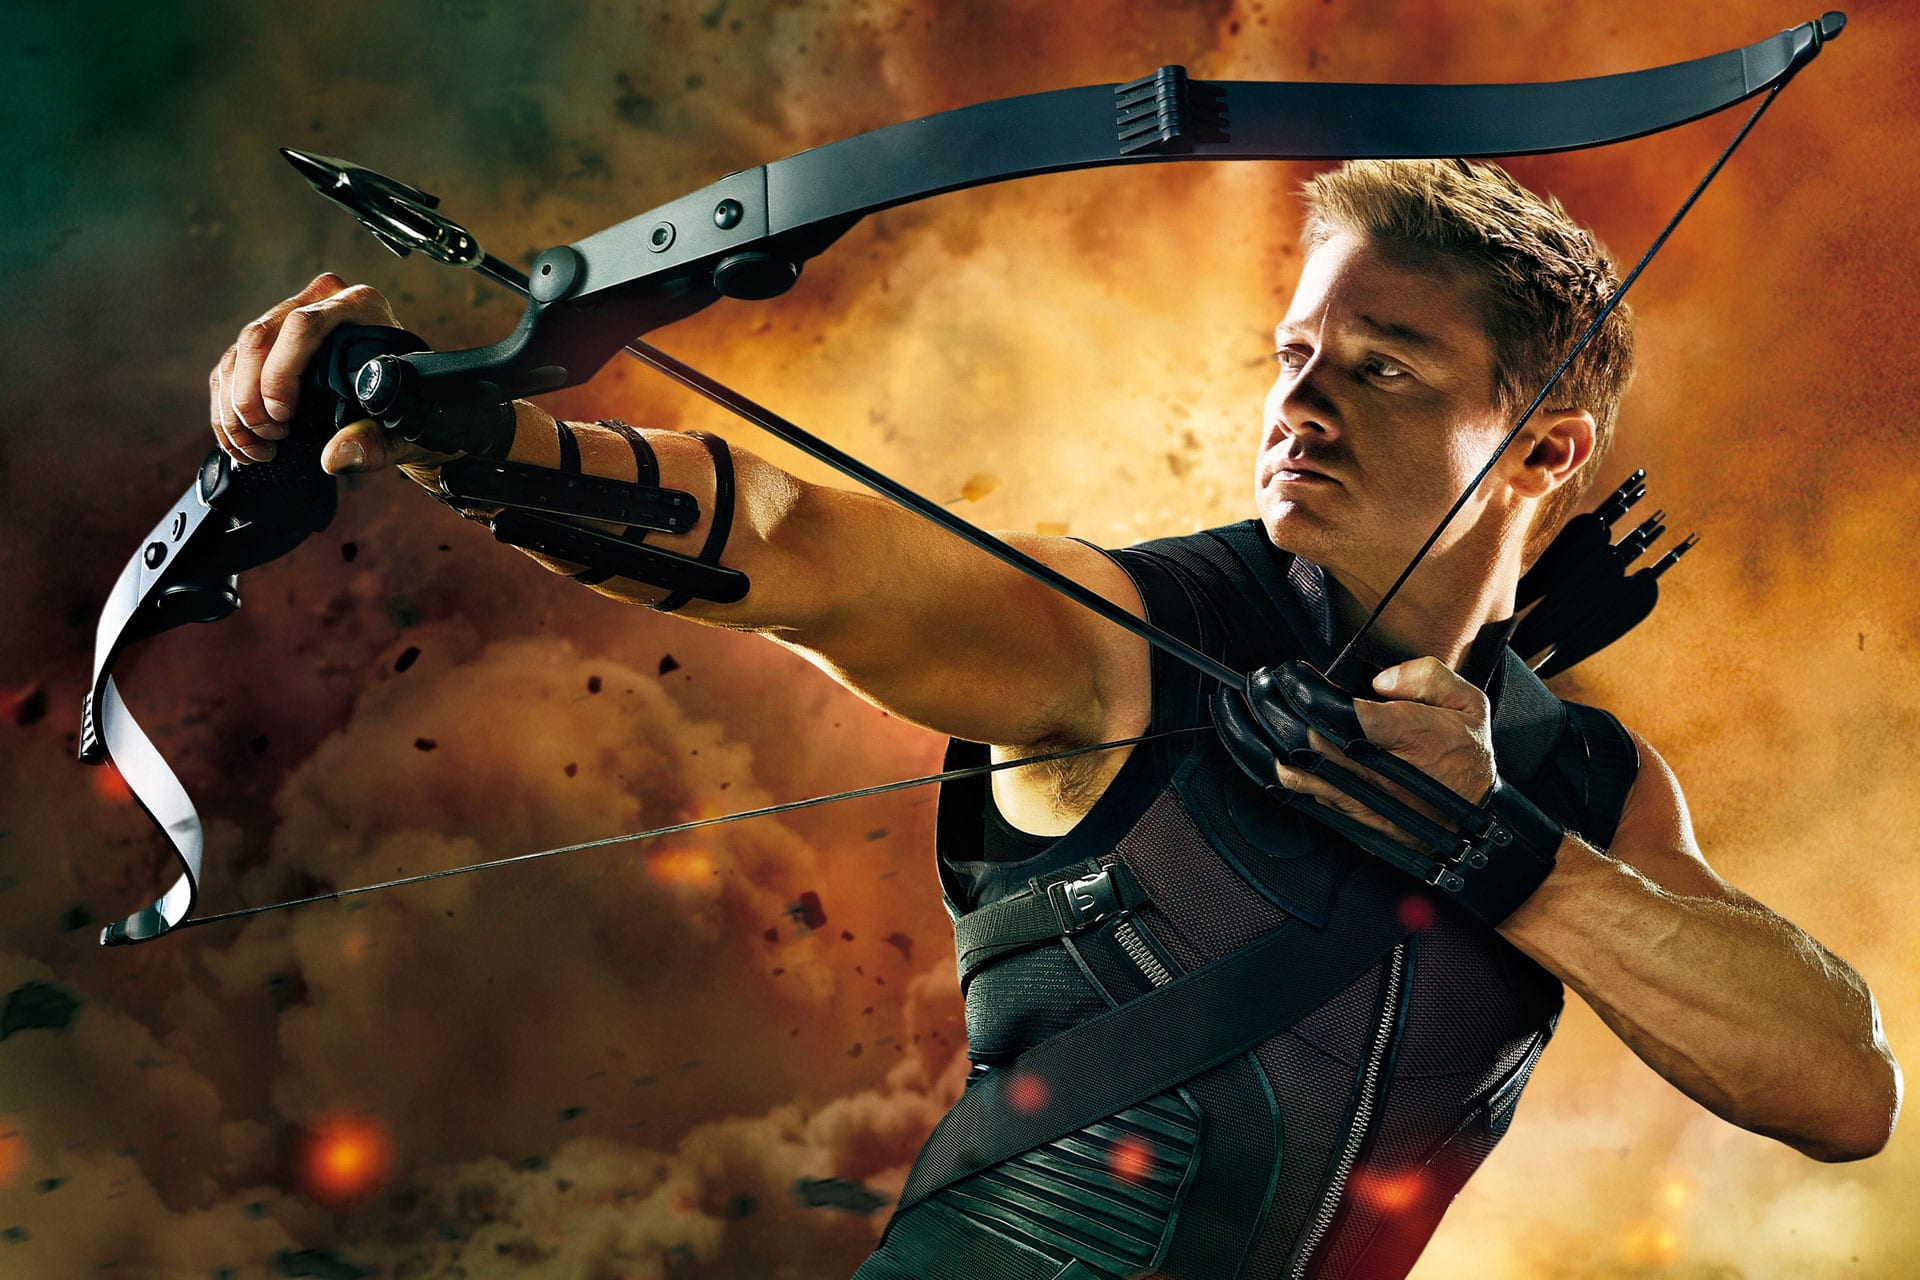 avengers-2-set-jeremy-renner-hawkeye-pic